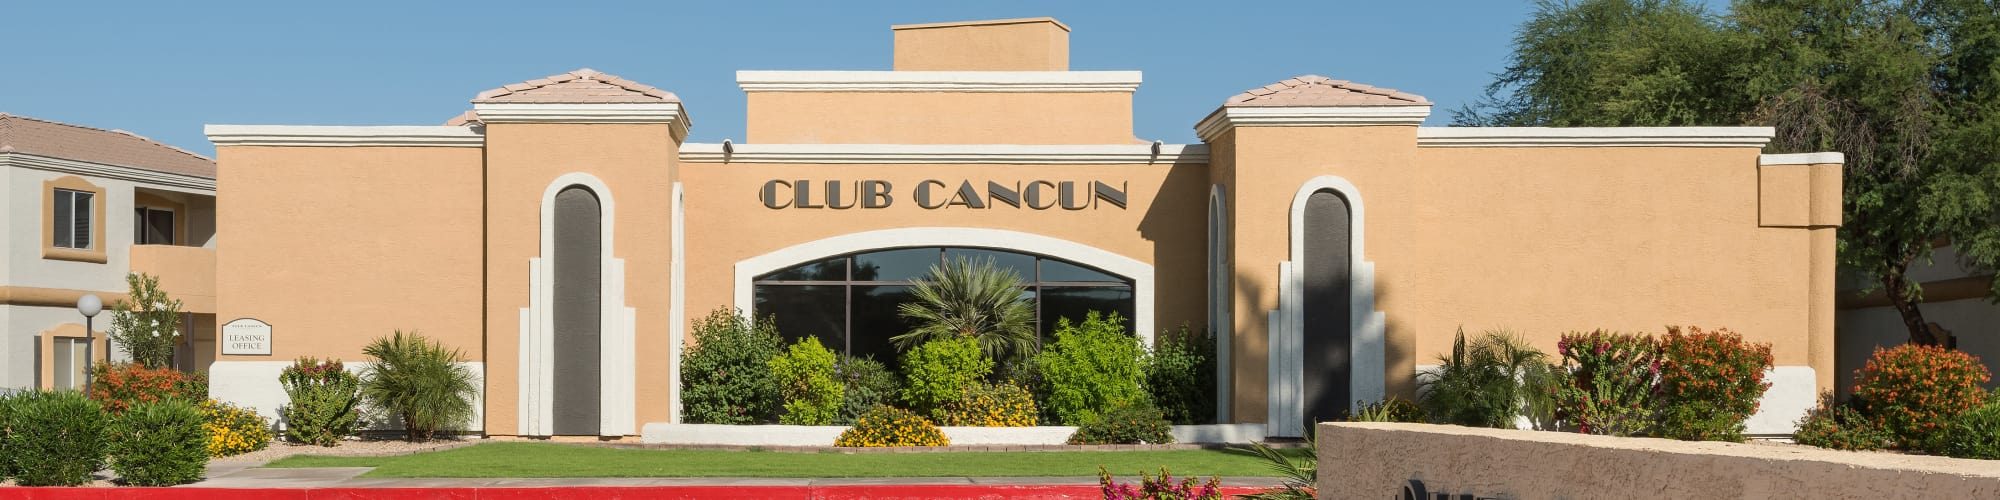 Contact us at Club Cancun in Chandler, Arizona